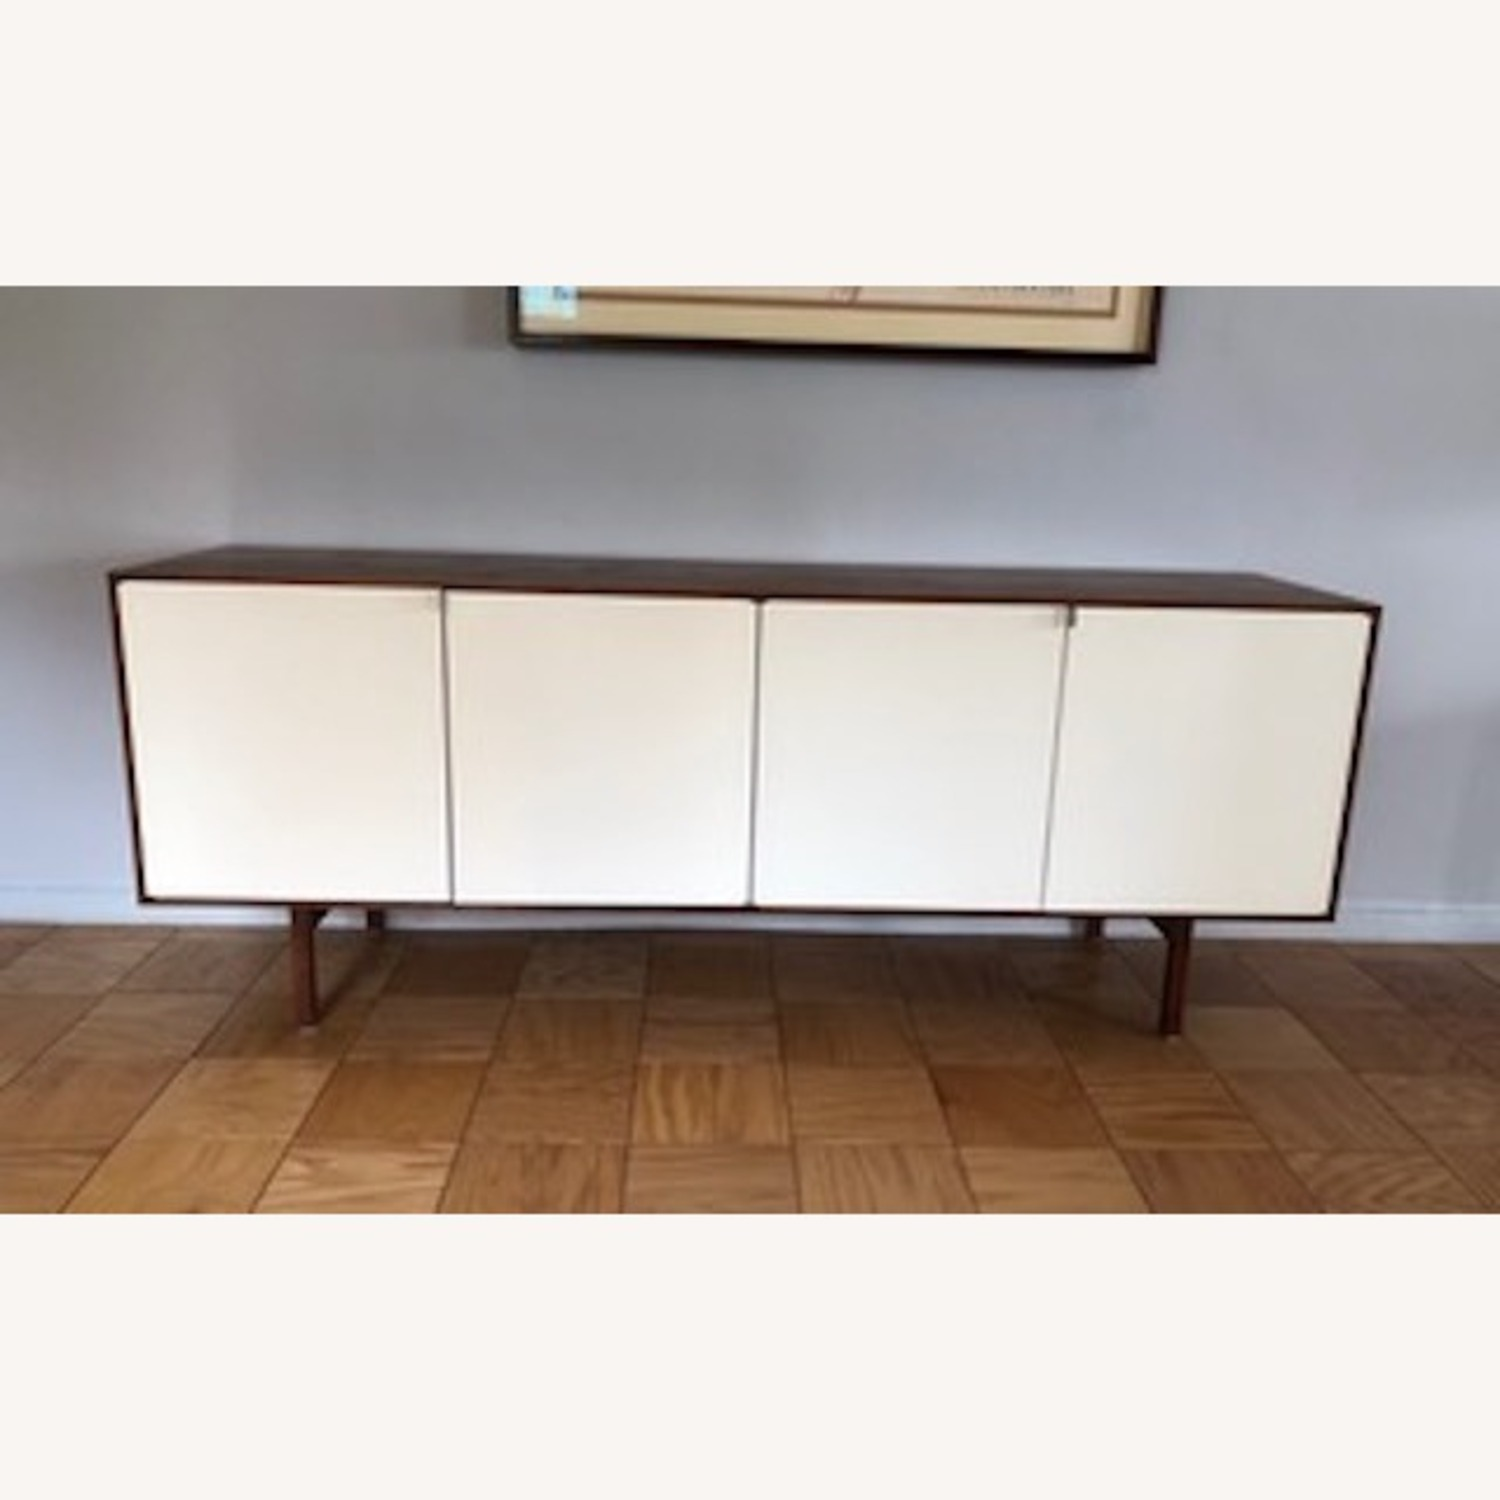 Vintage Florence Knoll Mid-Century Credenza - image-3